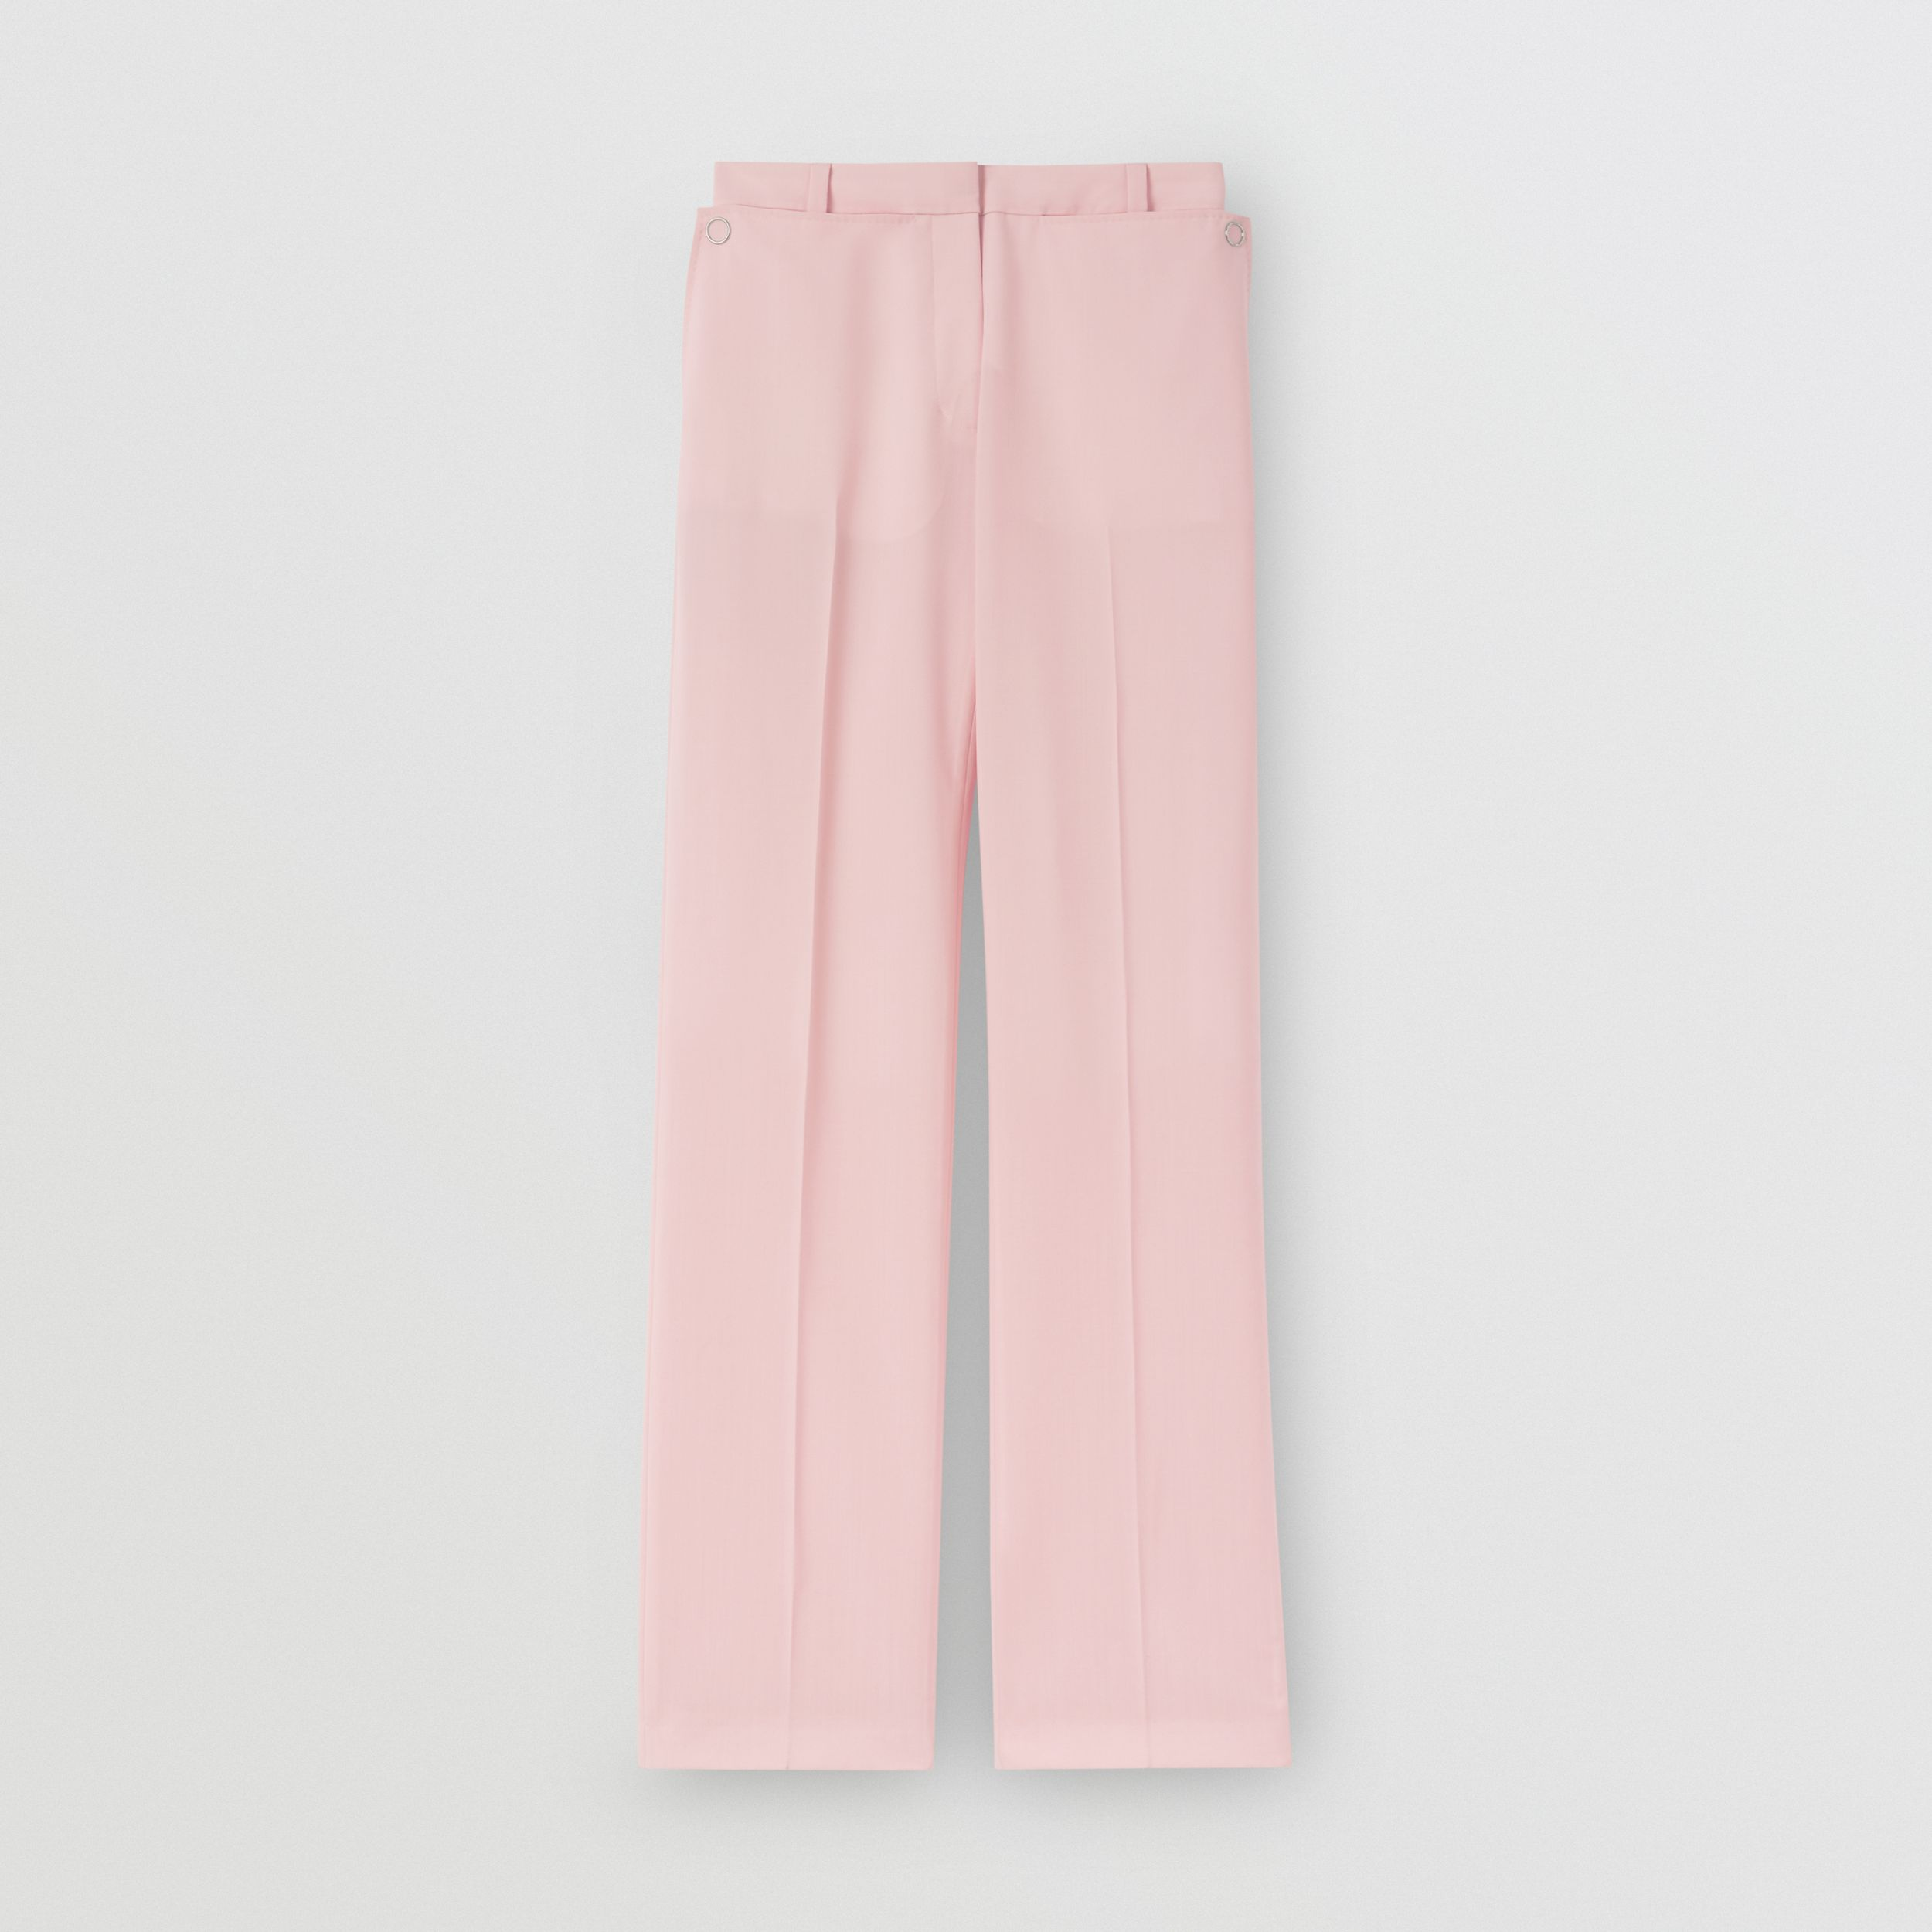 Pocket Detail Tumbled Wool Tailored Trousers in Soft Pink - Women | Burberry - 4